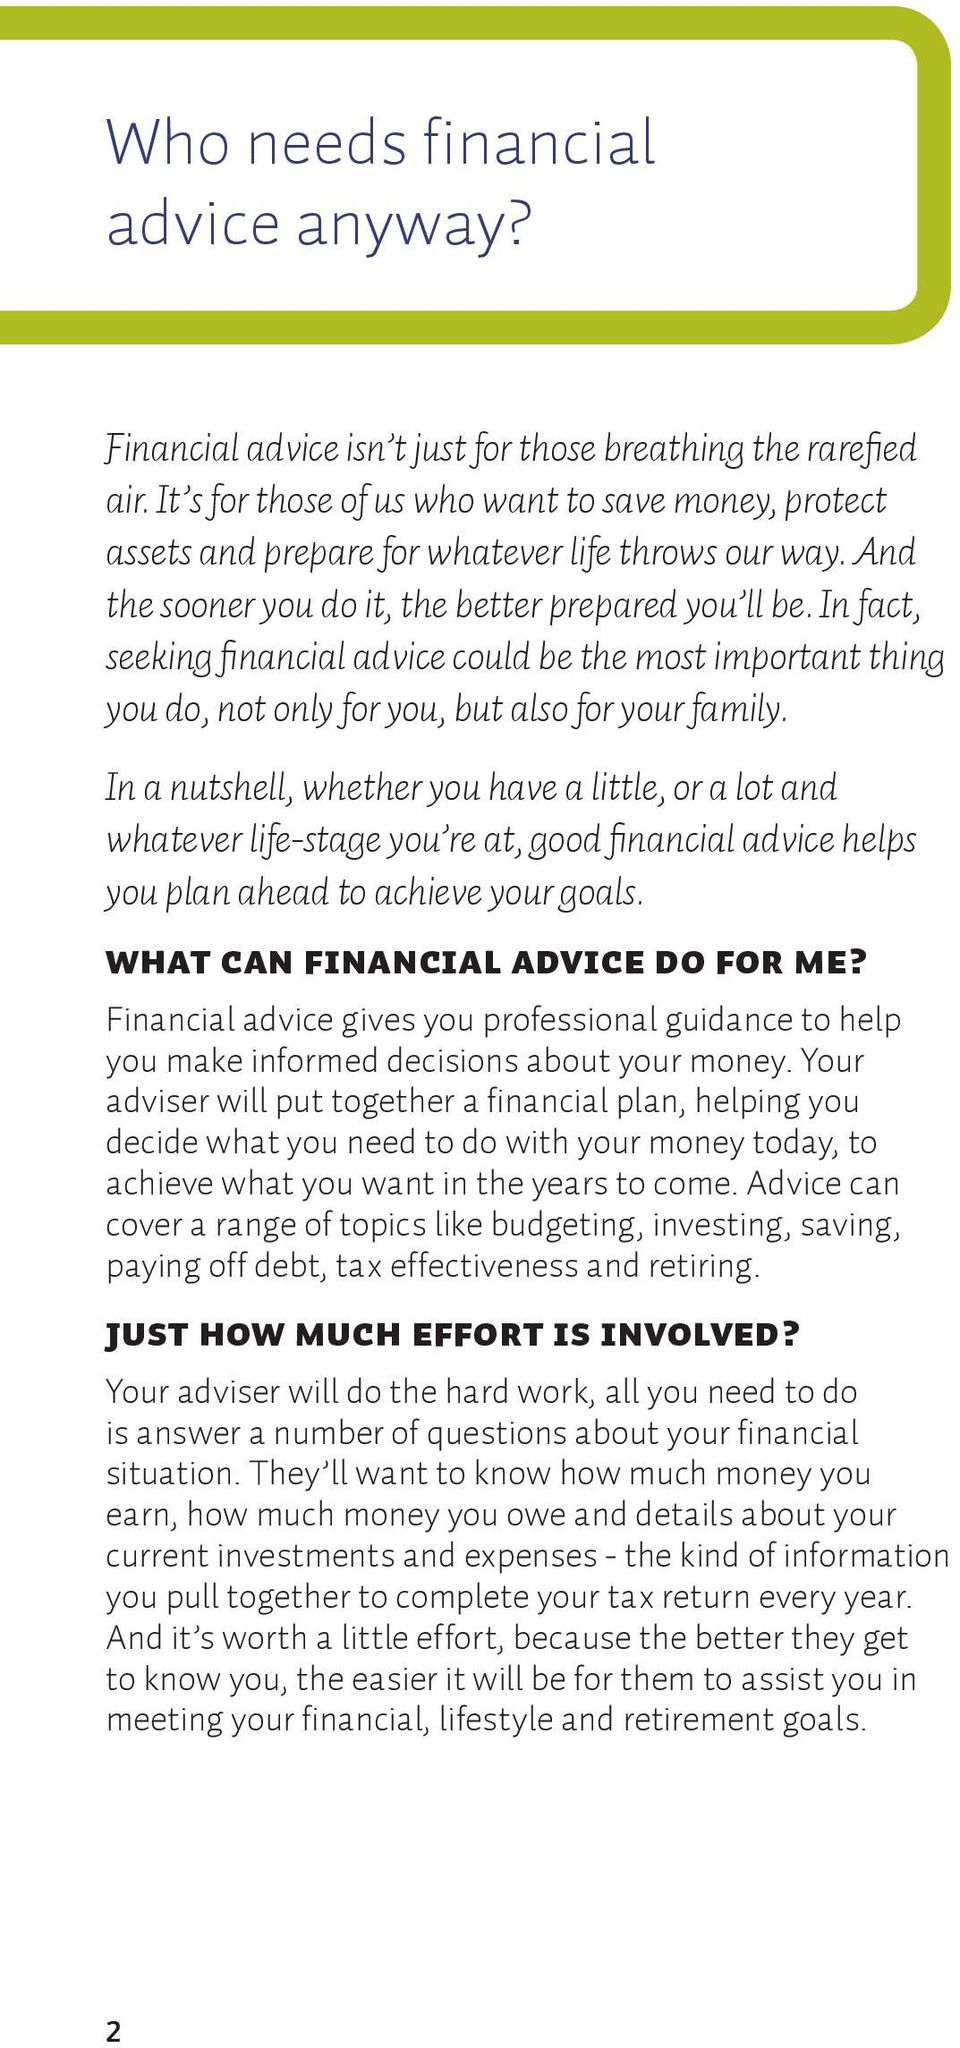 In fact, seeking fi nancial advice could be the most important thing you do, not only for you, but also for your family.